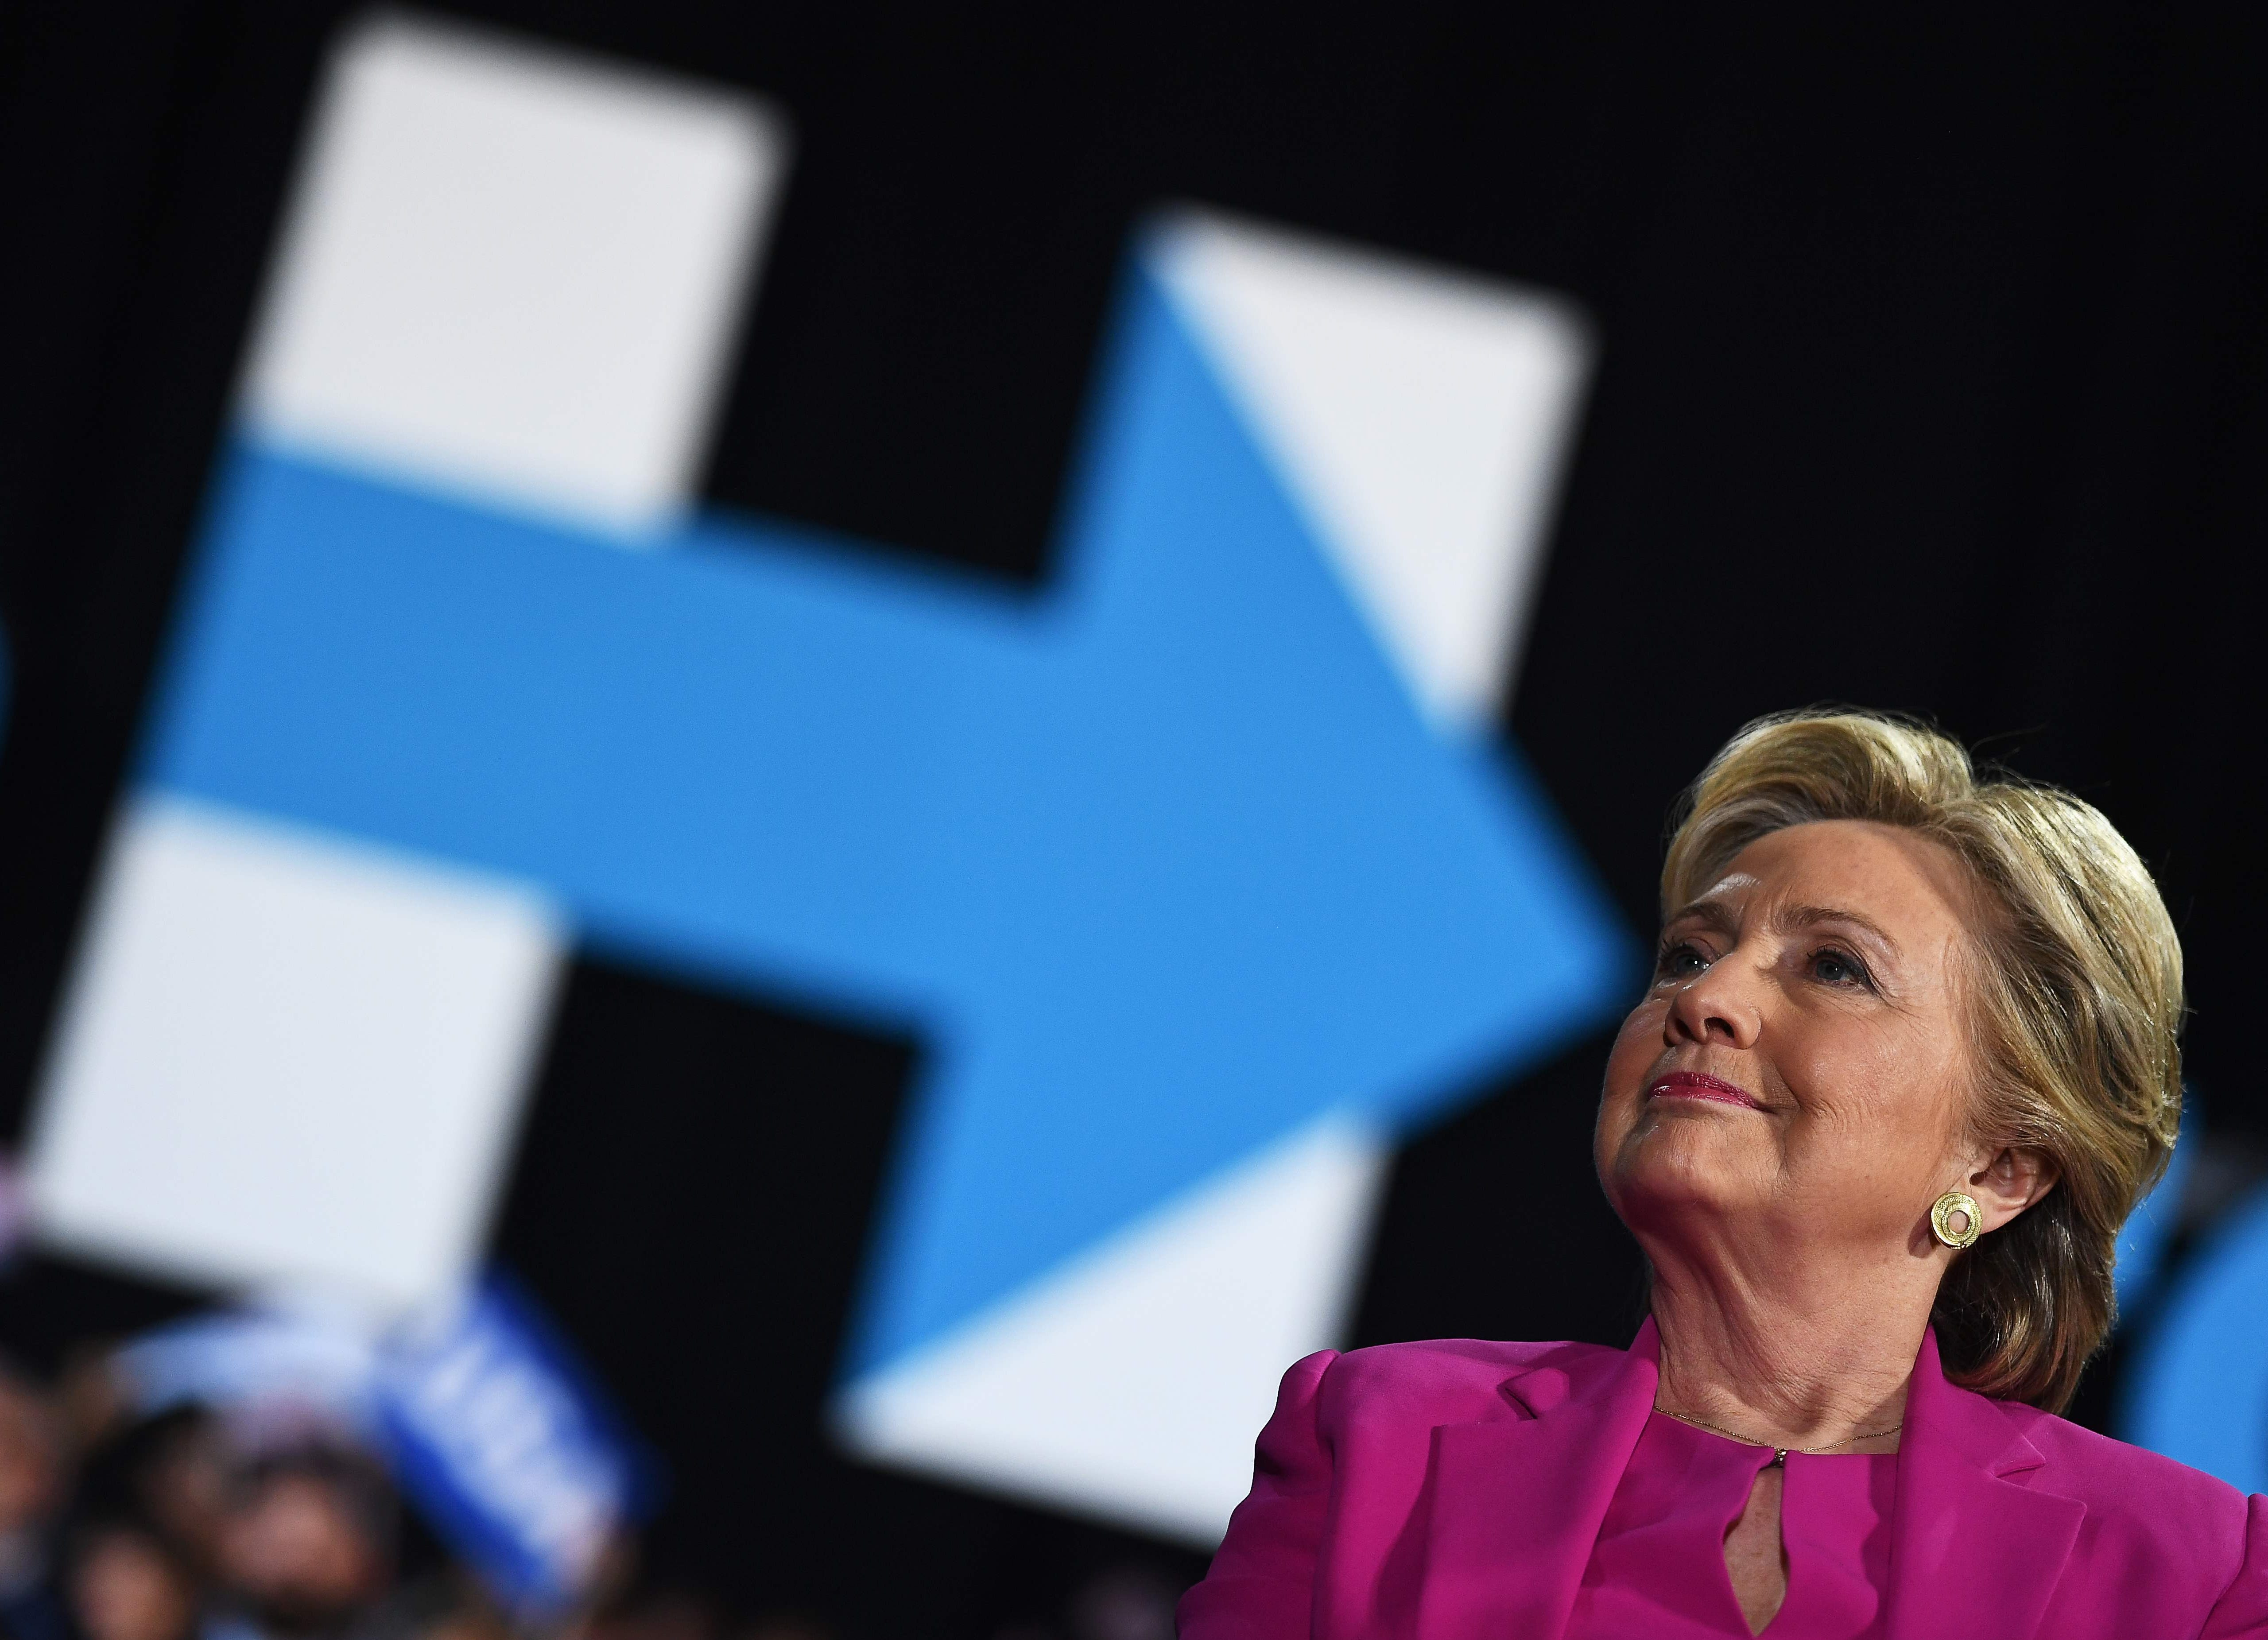 US Democratic presidential nominee Hillary Clinton speaks during a campaign rally in Raleigh, North Carolina, on November 3, 2016.